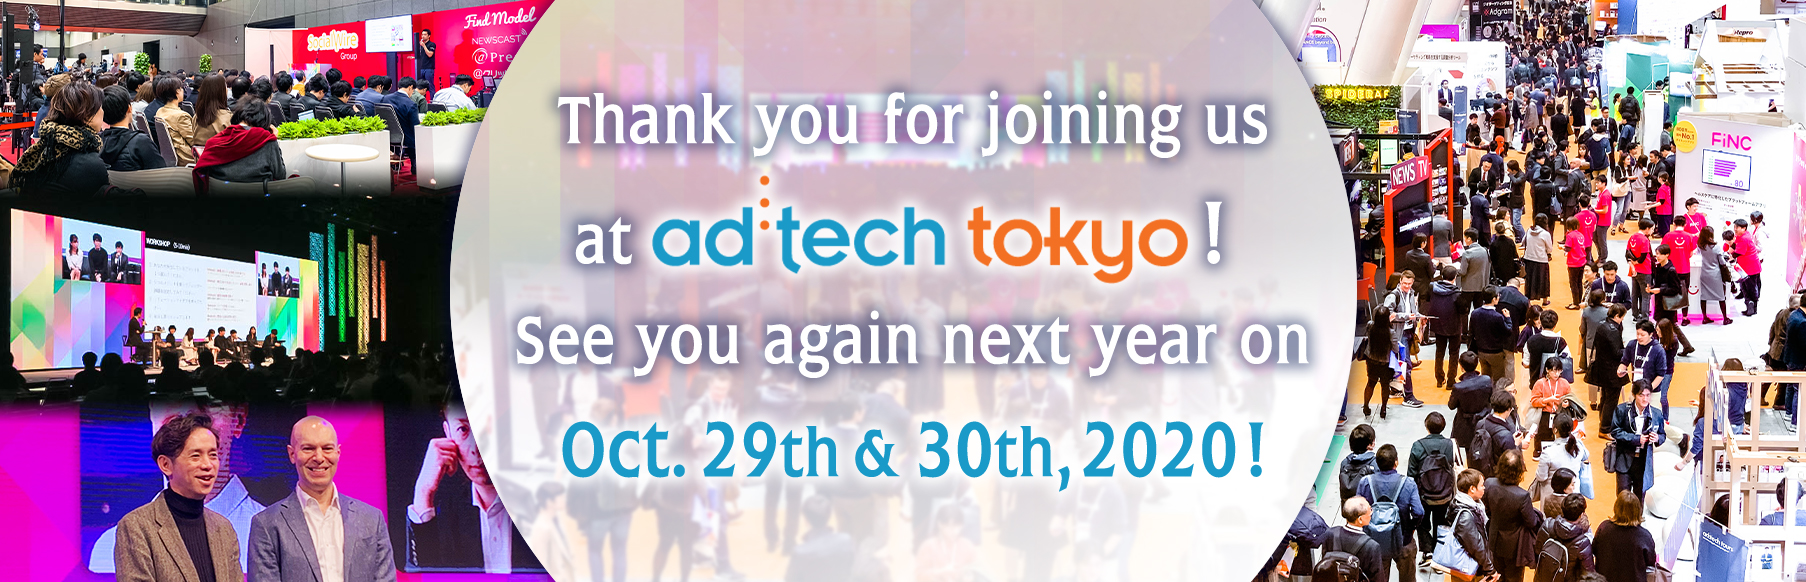 Thank you for joining us at ad:tech tokyo! See you again next year on Oct. 29th & 30th, 2020!